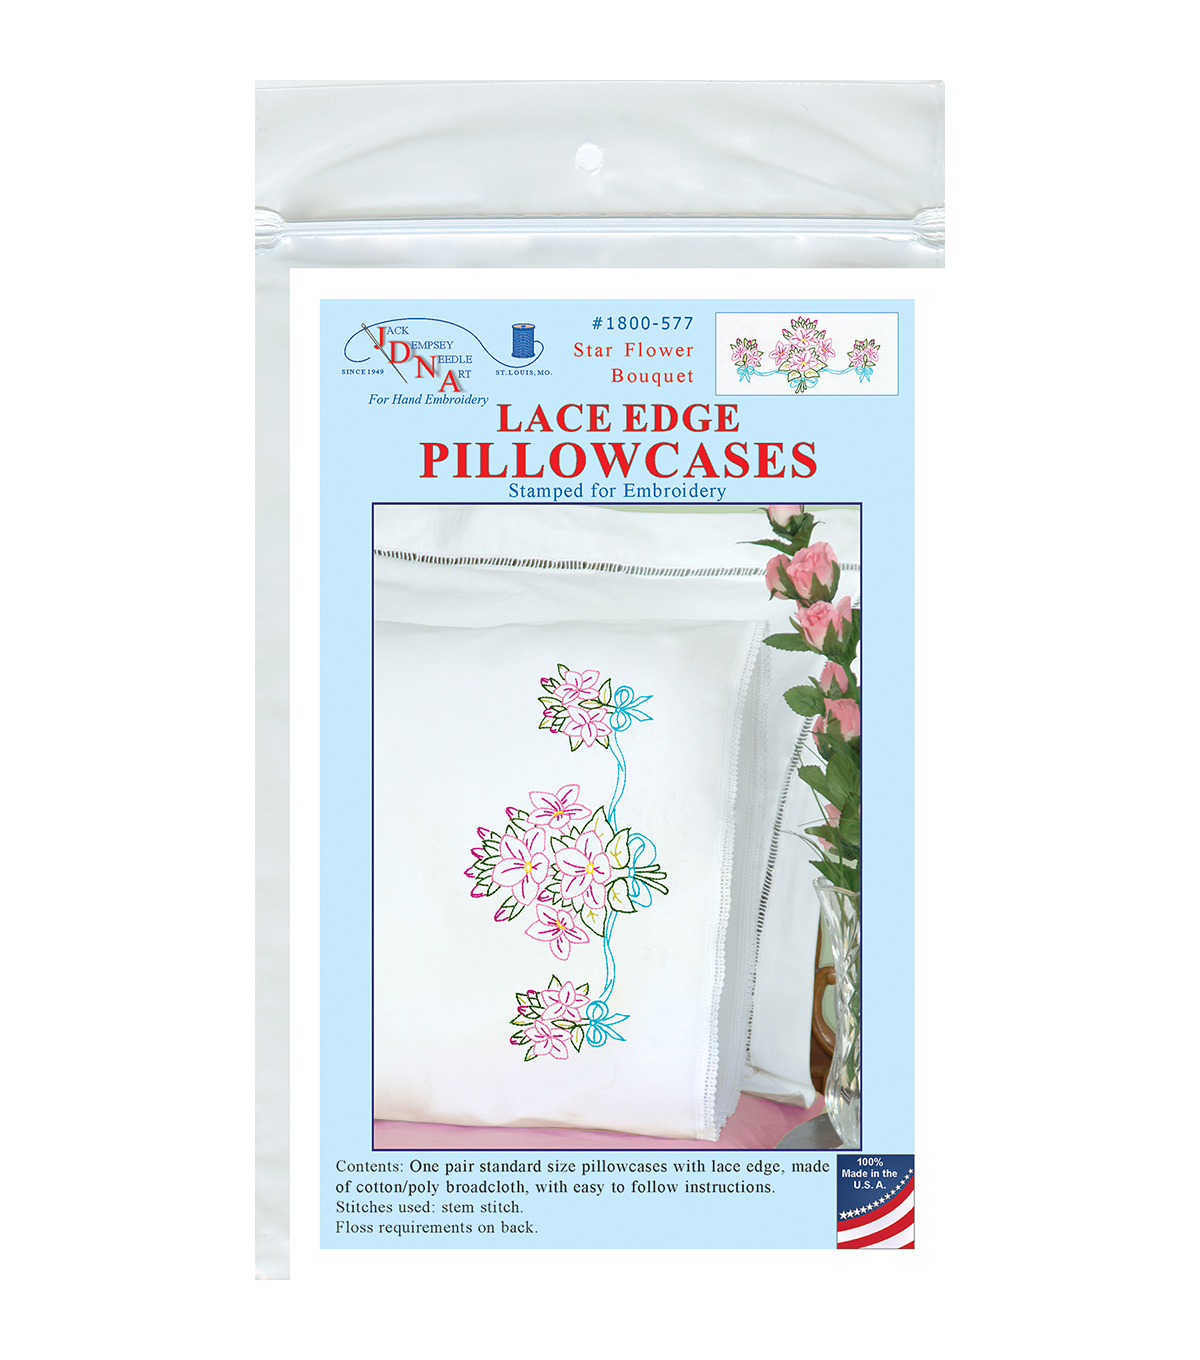 Jack Dempsey Star Flower Bouquet Stamped Pillowcases White Lace Edge